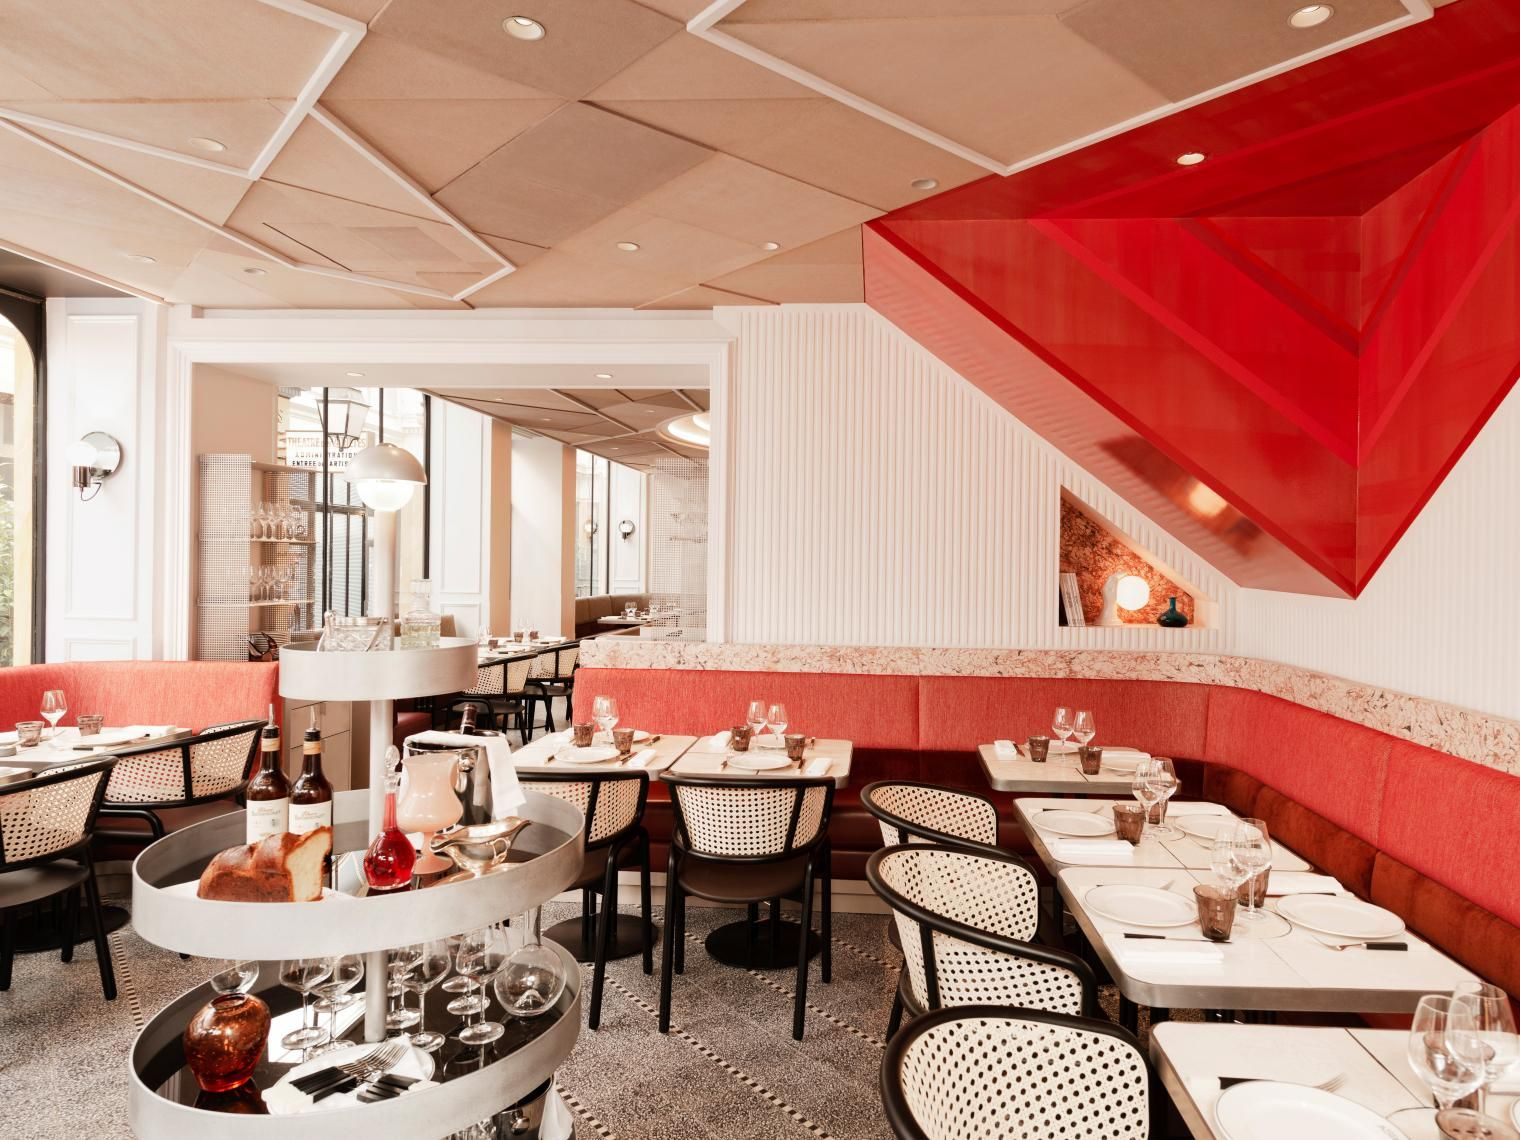 2019 S Hottest New Restaurant Openings Across The Globe Restaurant Paris Restaurants Best Restaurants In Paris